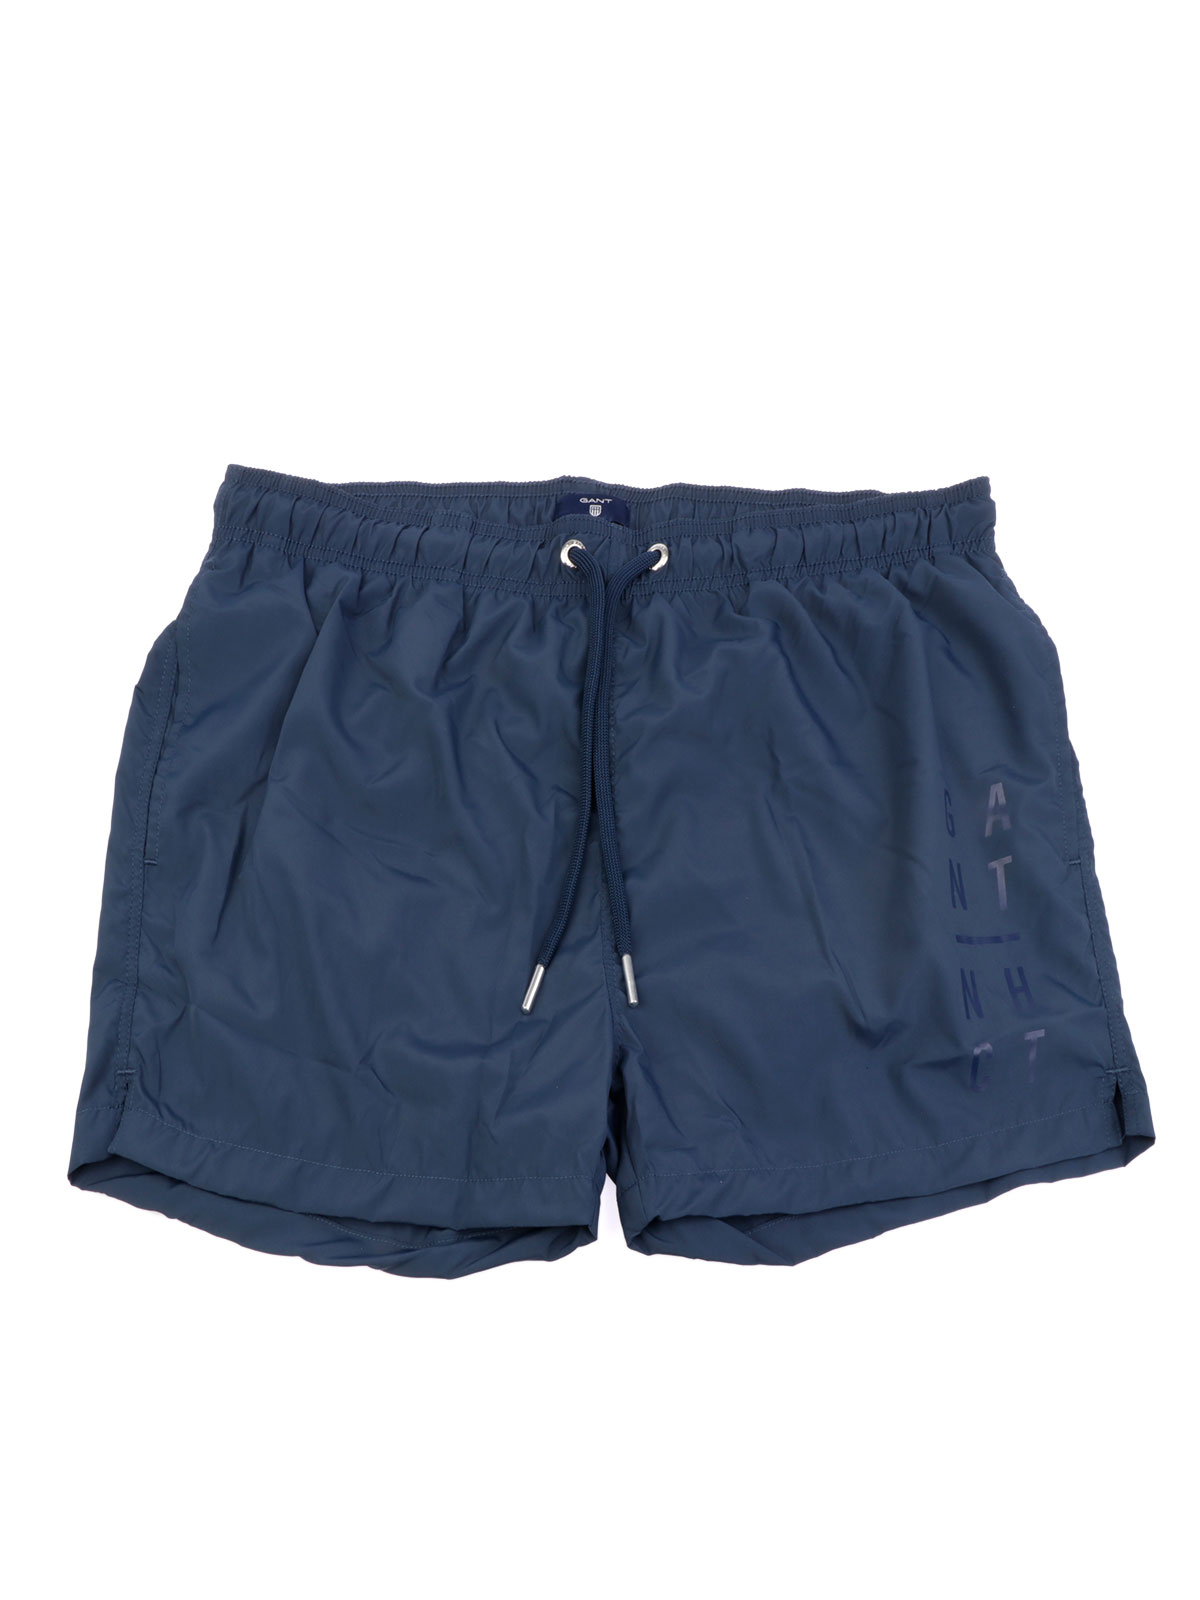 Picture of GANT | Men's Summer Essential Swim Short